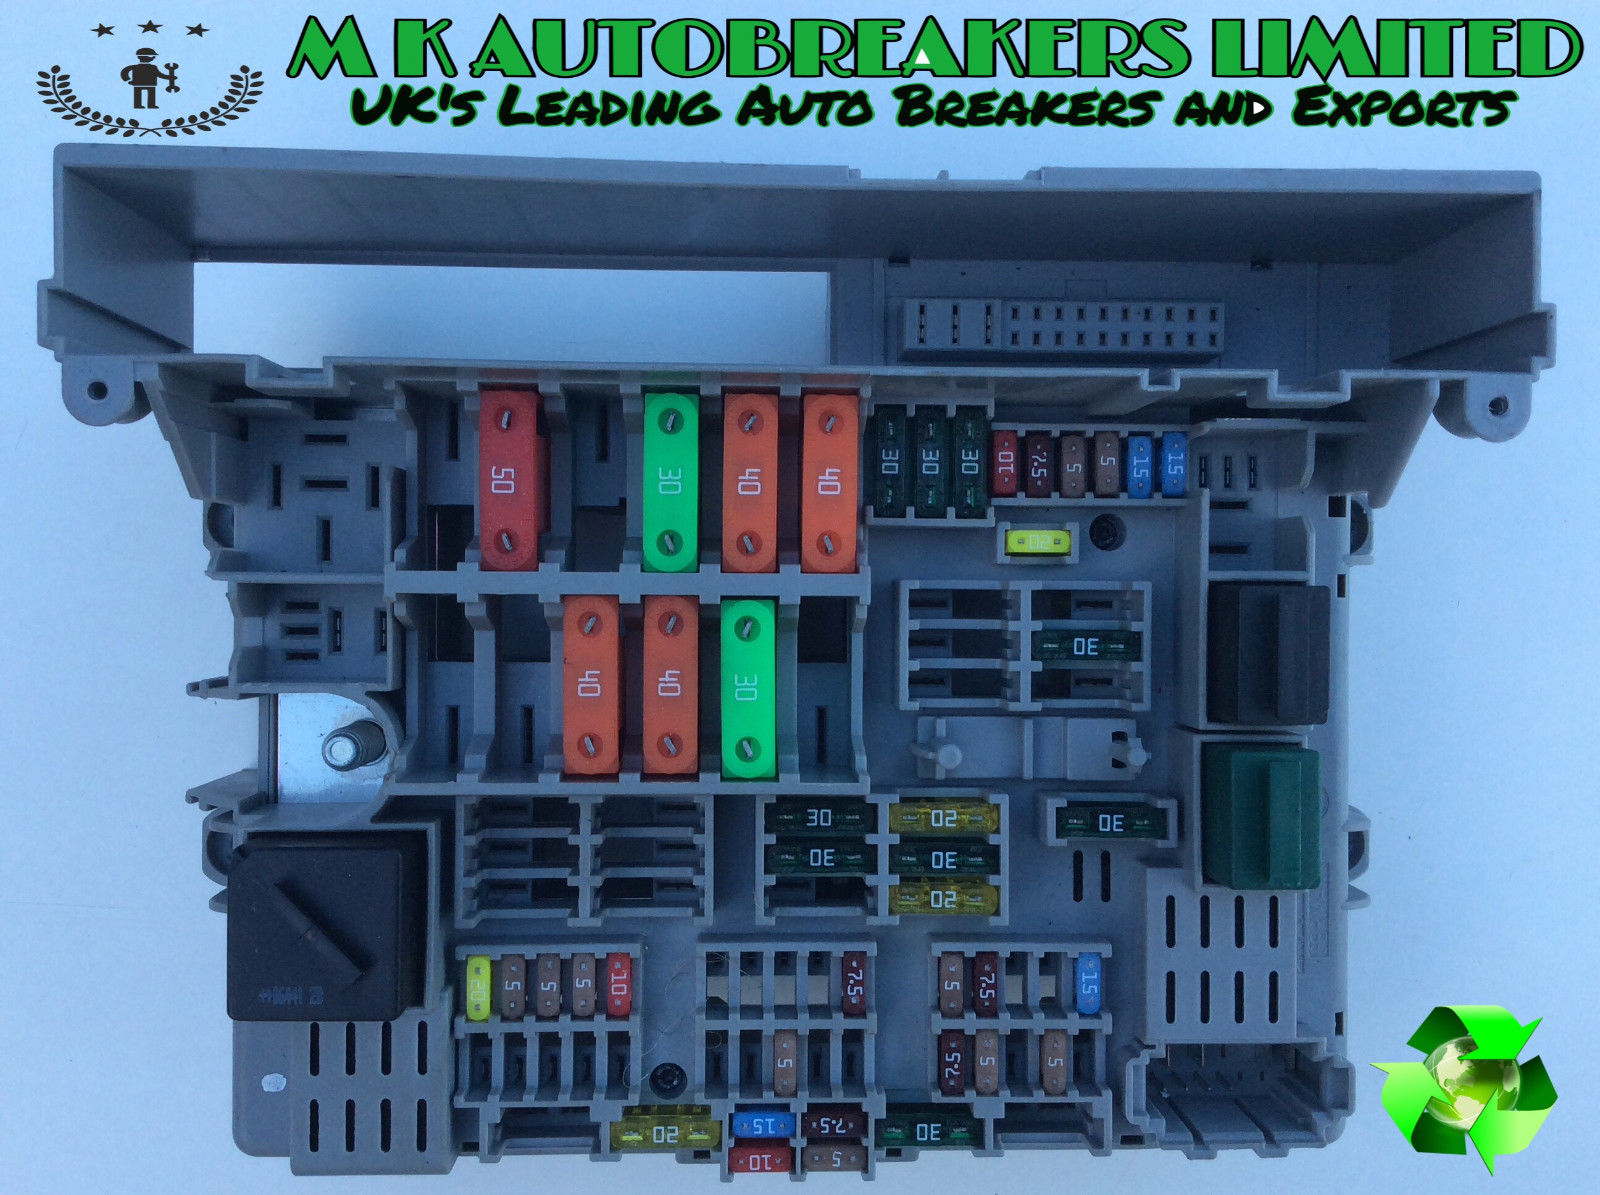 08 Bmw Fuse Box Wiring Library 325i 2008 328i Diagram For E91 Schematic Diagrams 1998